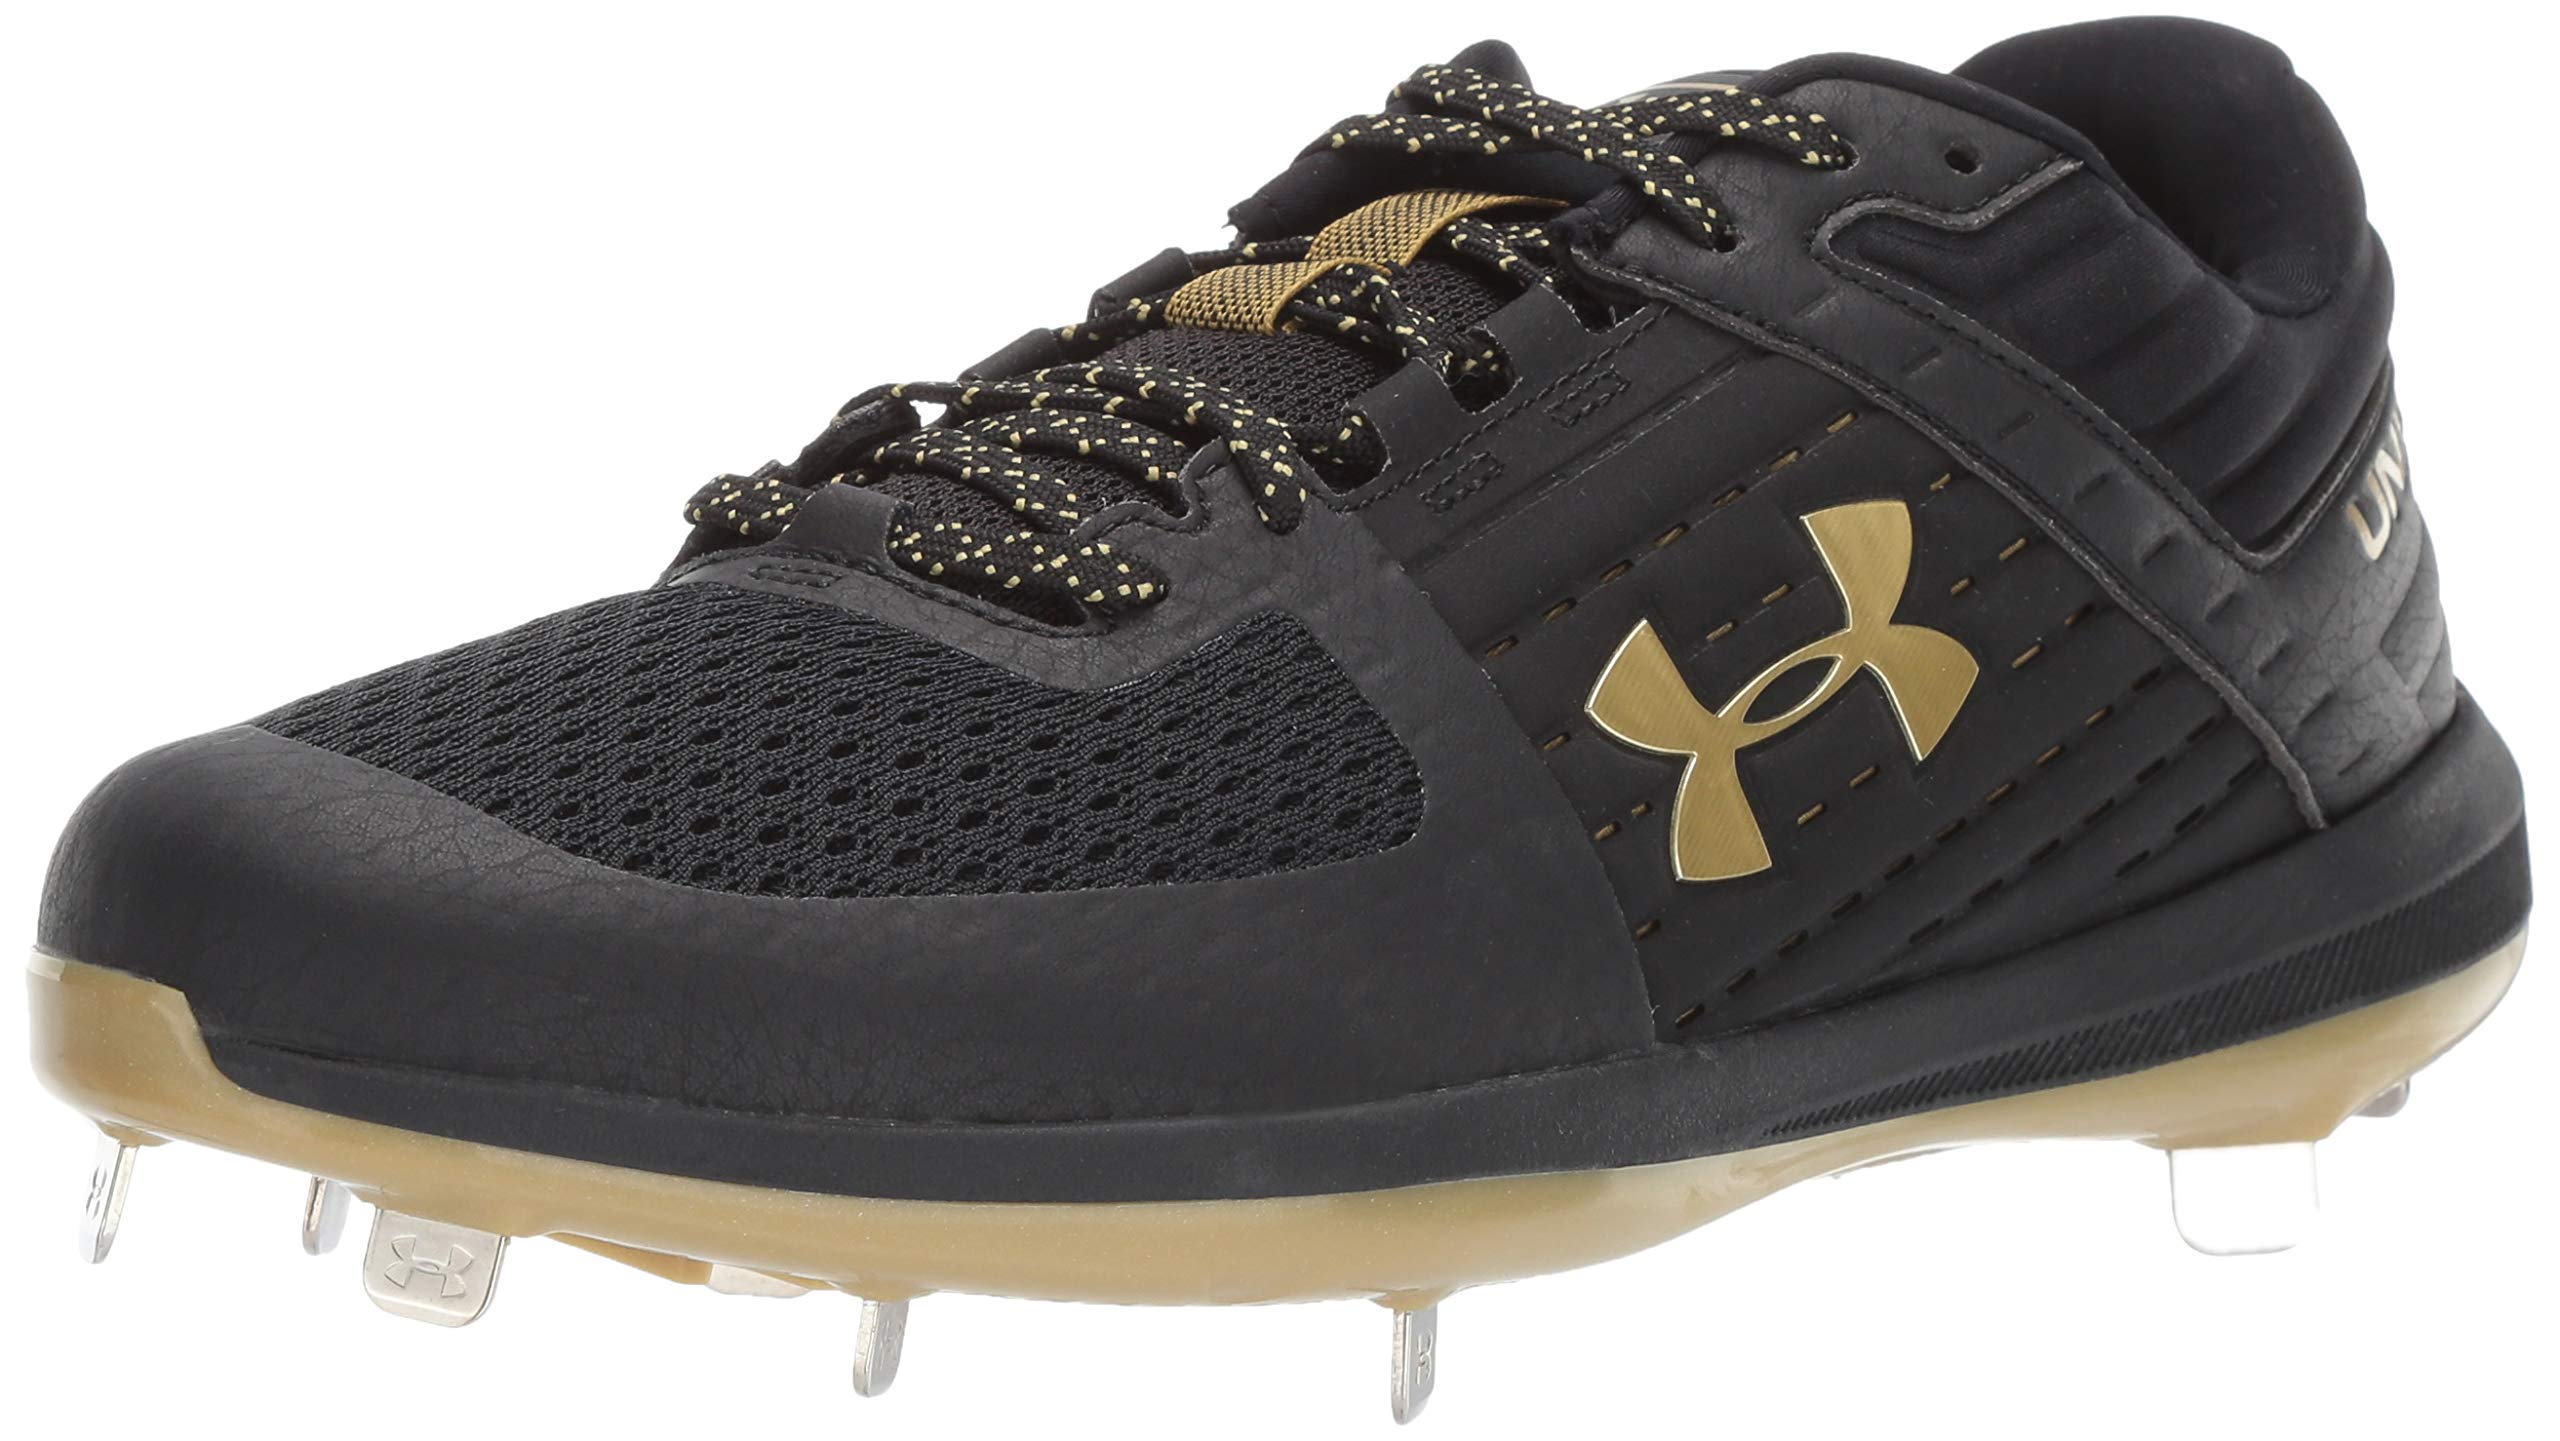 Under Armour Men's Yard Low ST Baseball Shoe, Black (004)/Metallic Gold, 7 by Under Armour